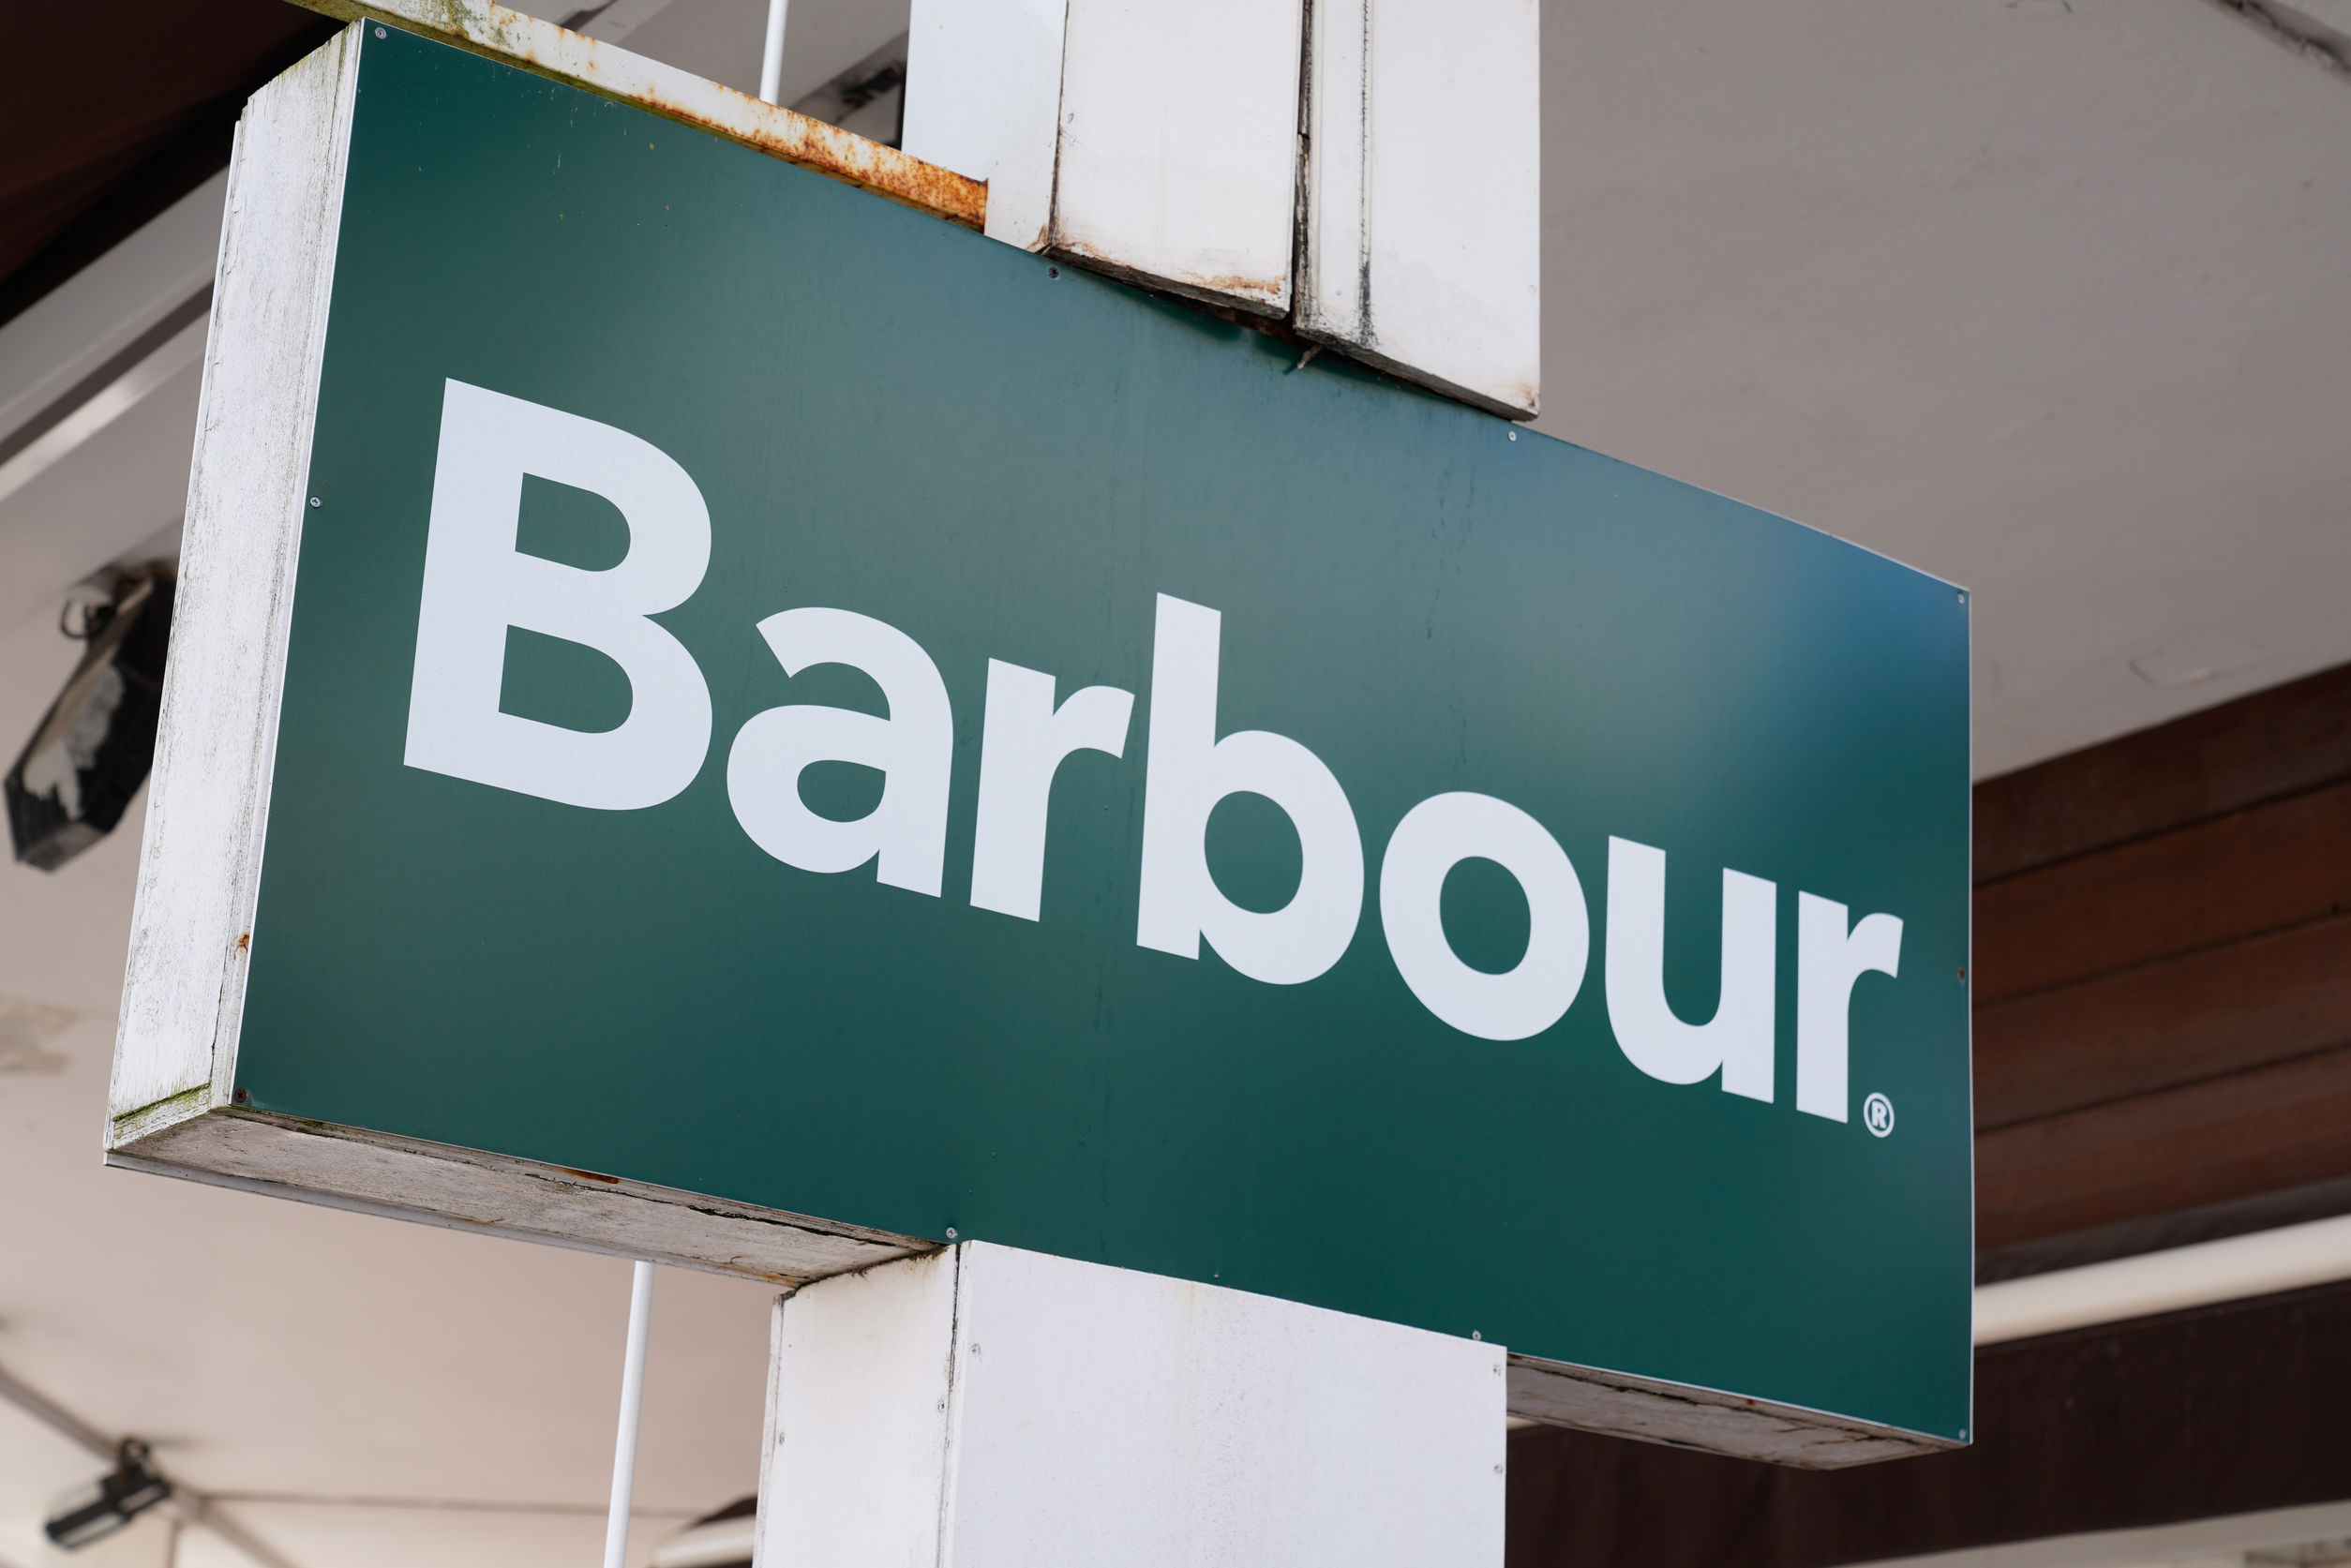 barbour student discount image